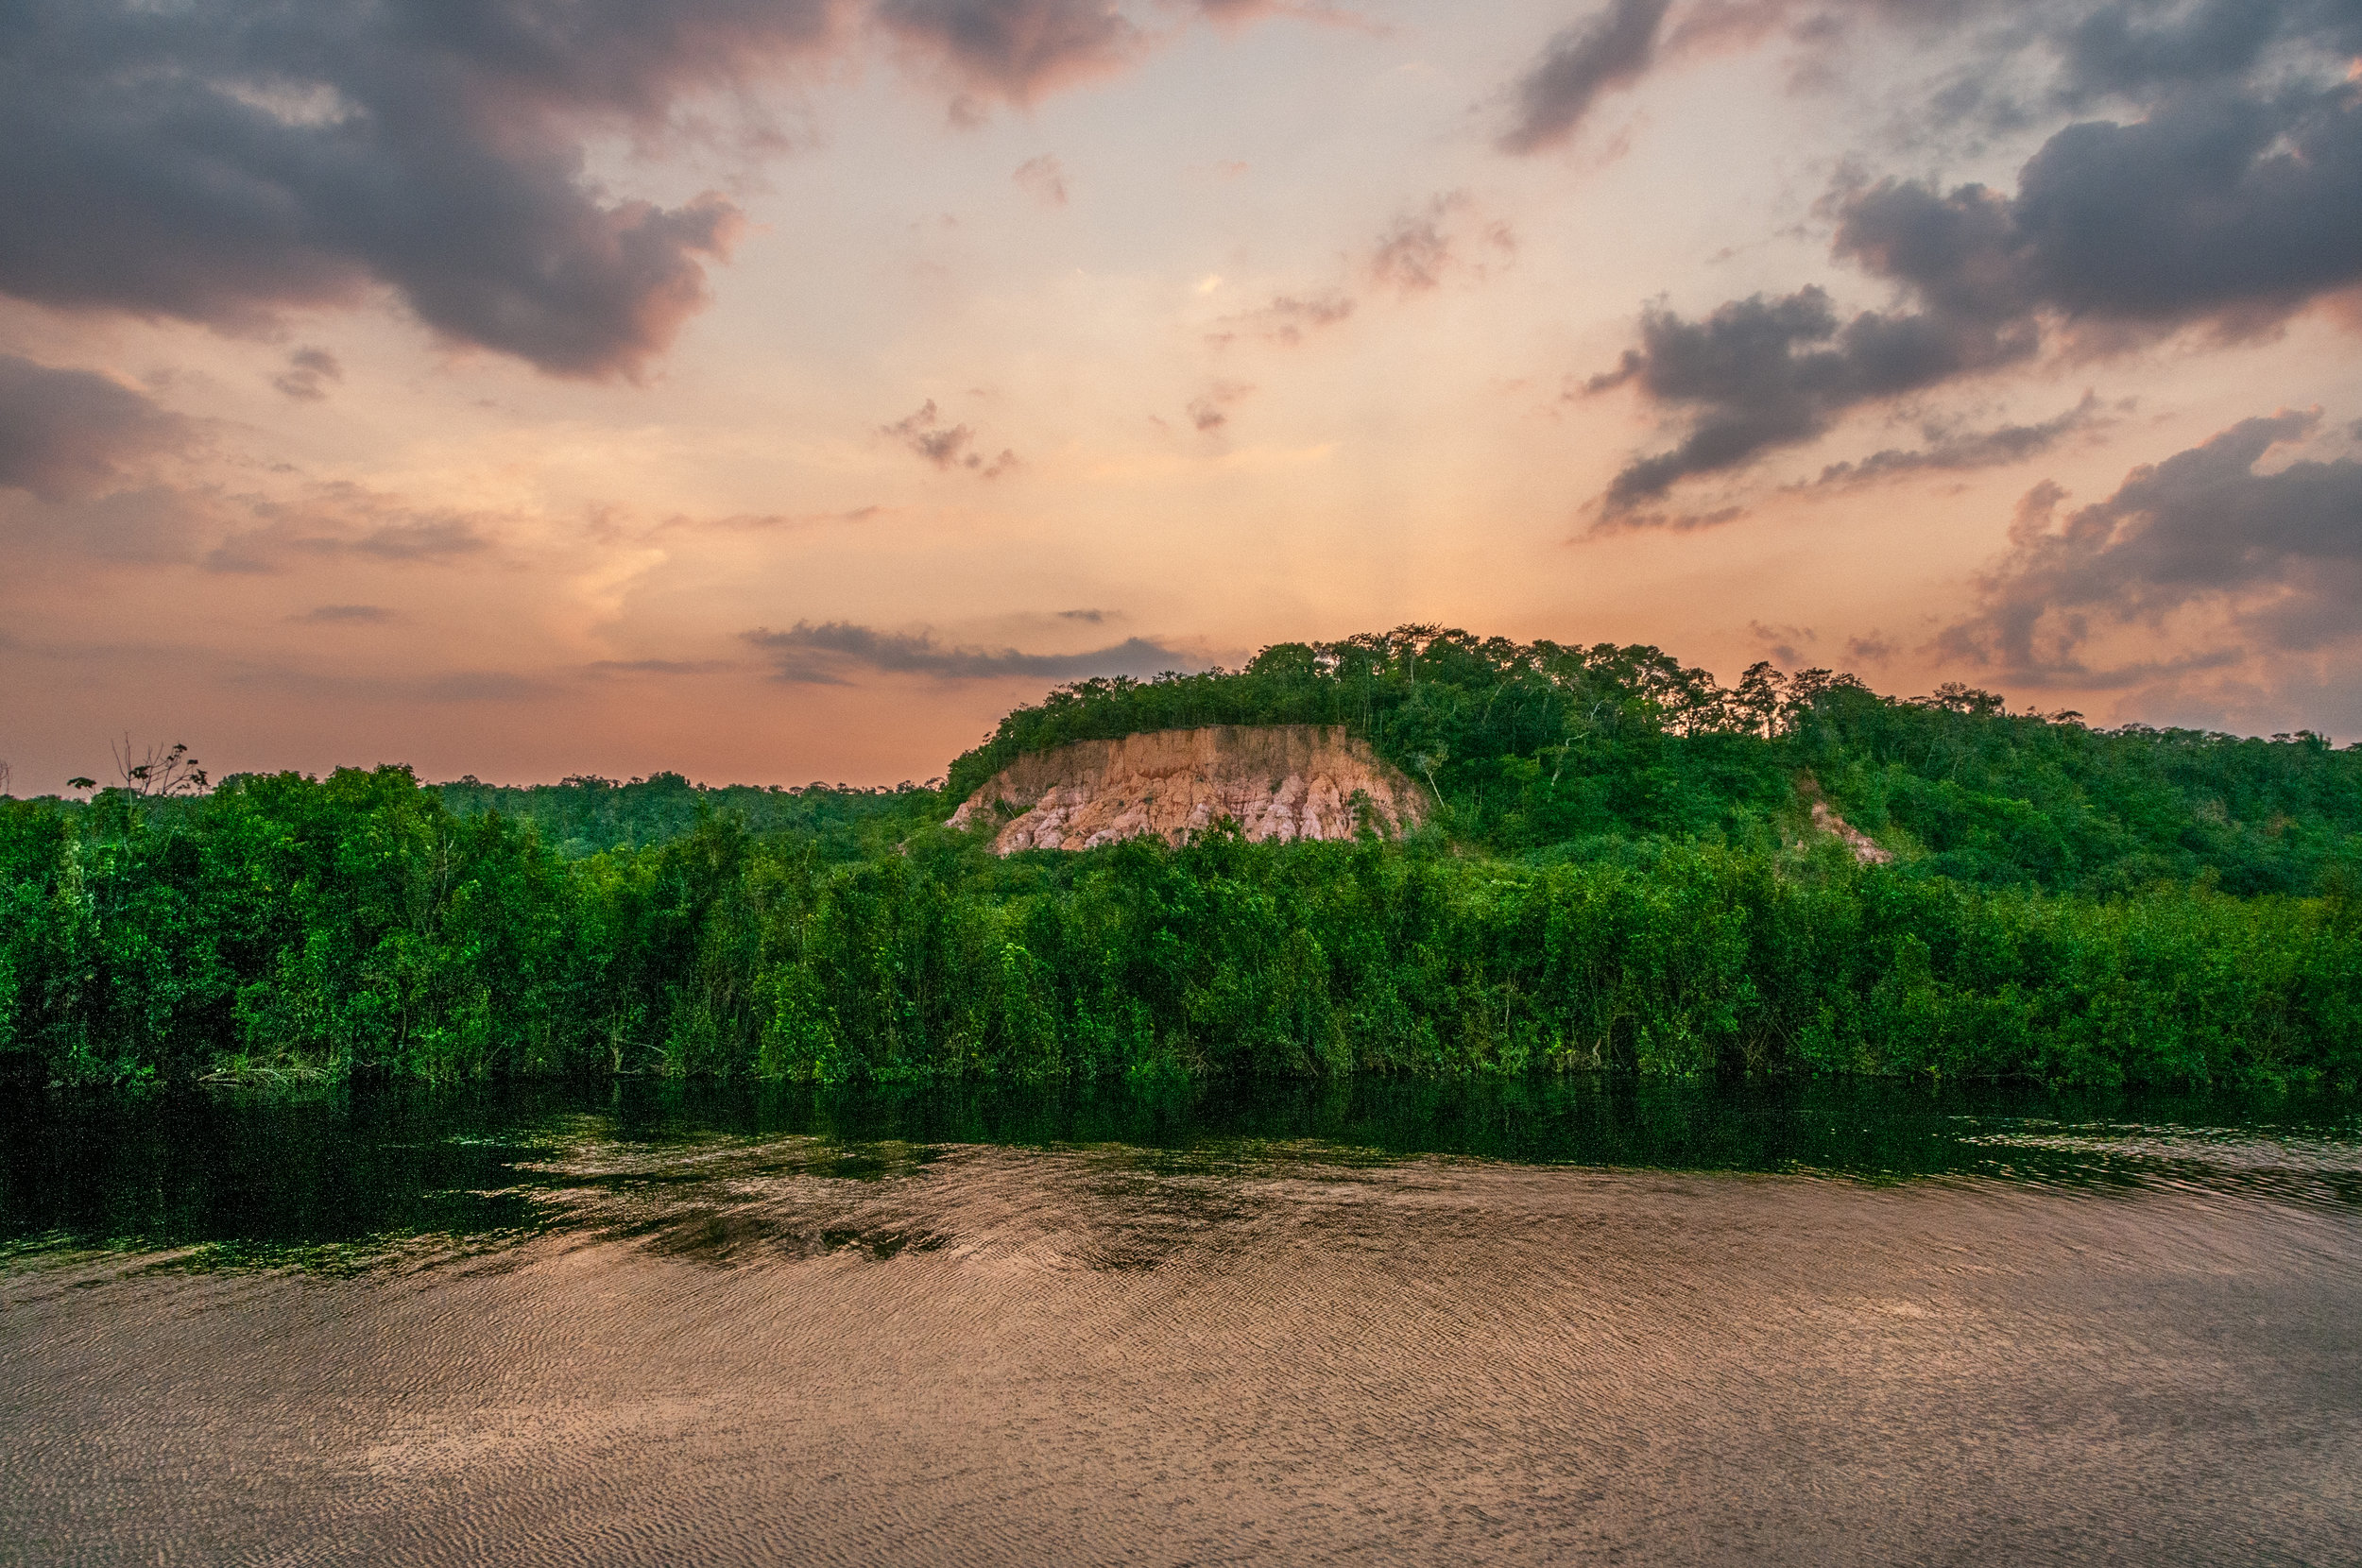 Guyana - The most pristine rainforest - and the most meaningful place for conservation